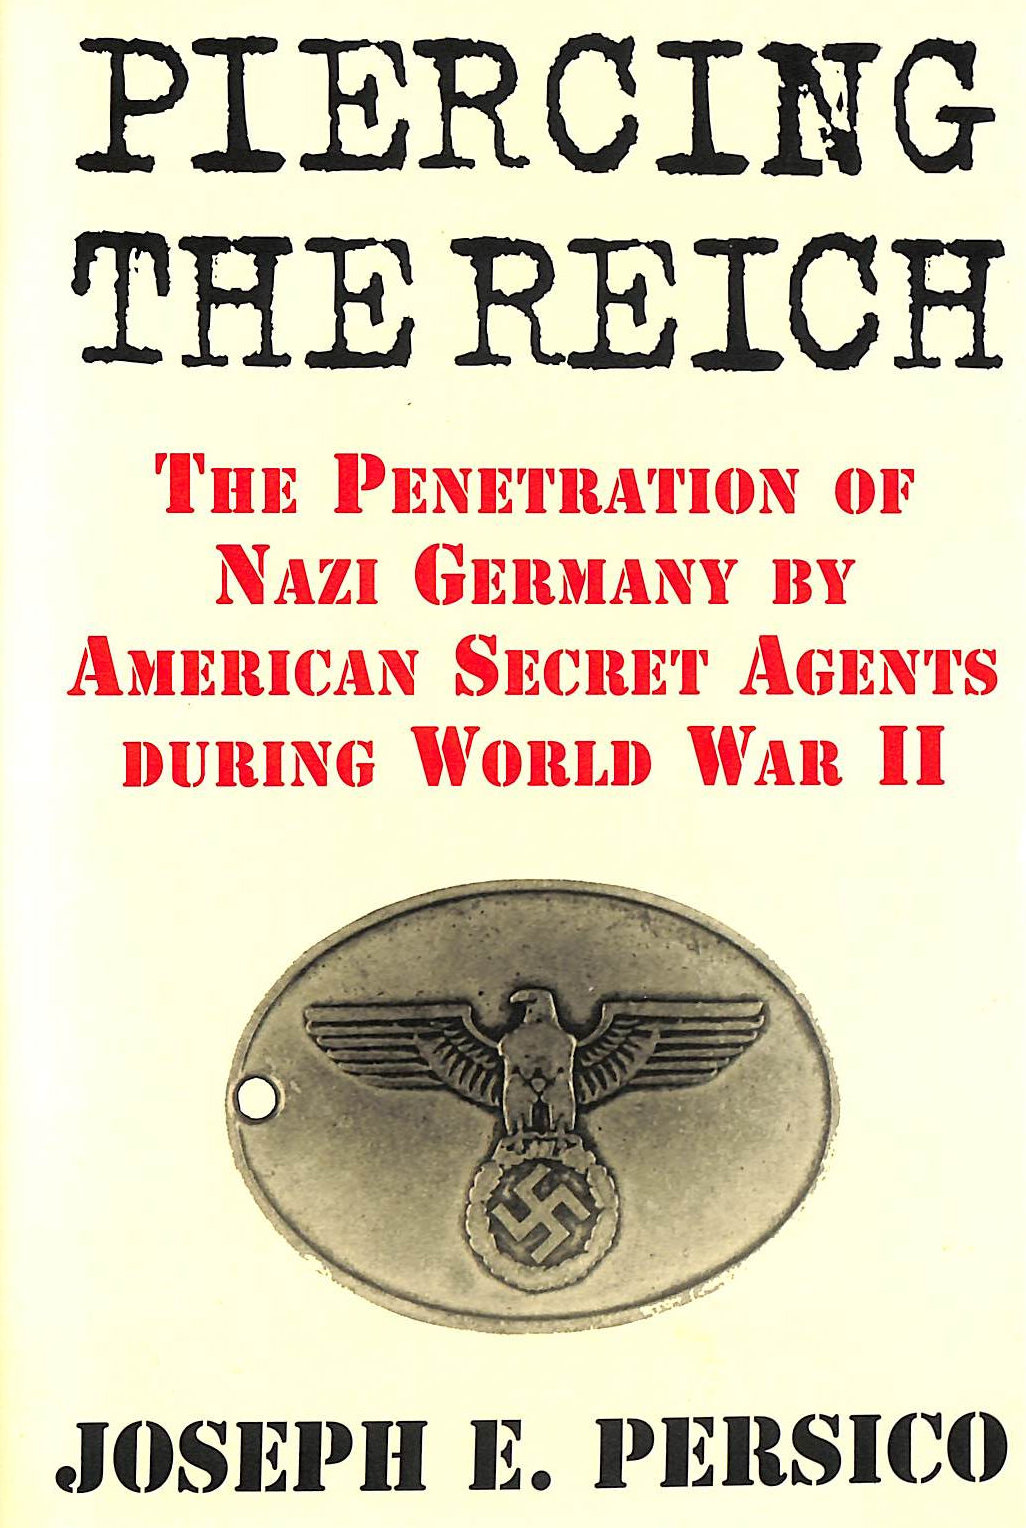 Image for Piercing the Reich : the Penetration of Nazi Germany by OSS Agents During World War II / Joseph E. Persico.